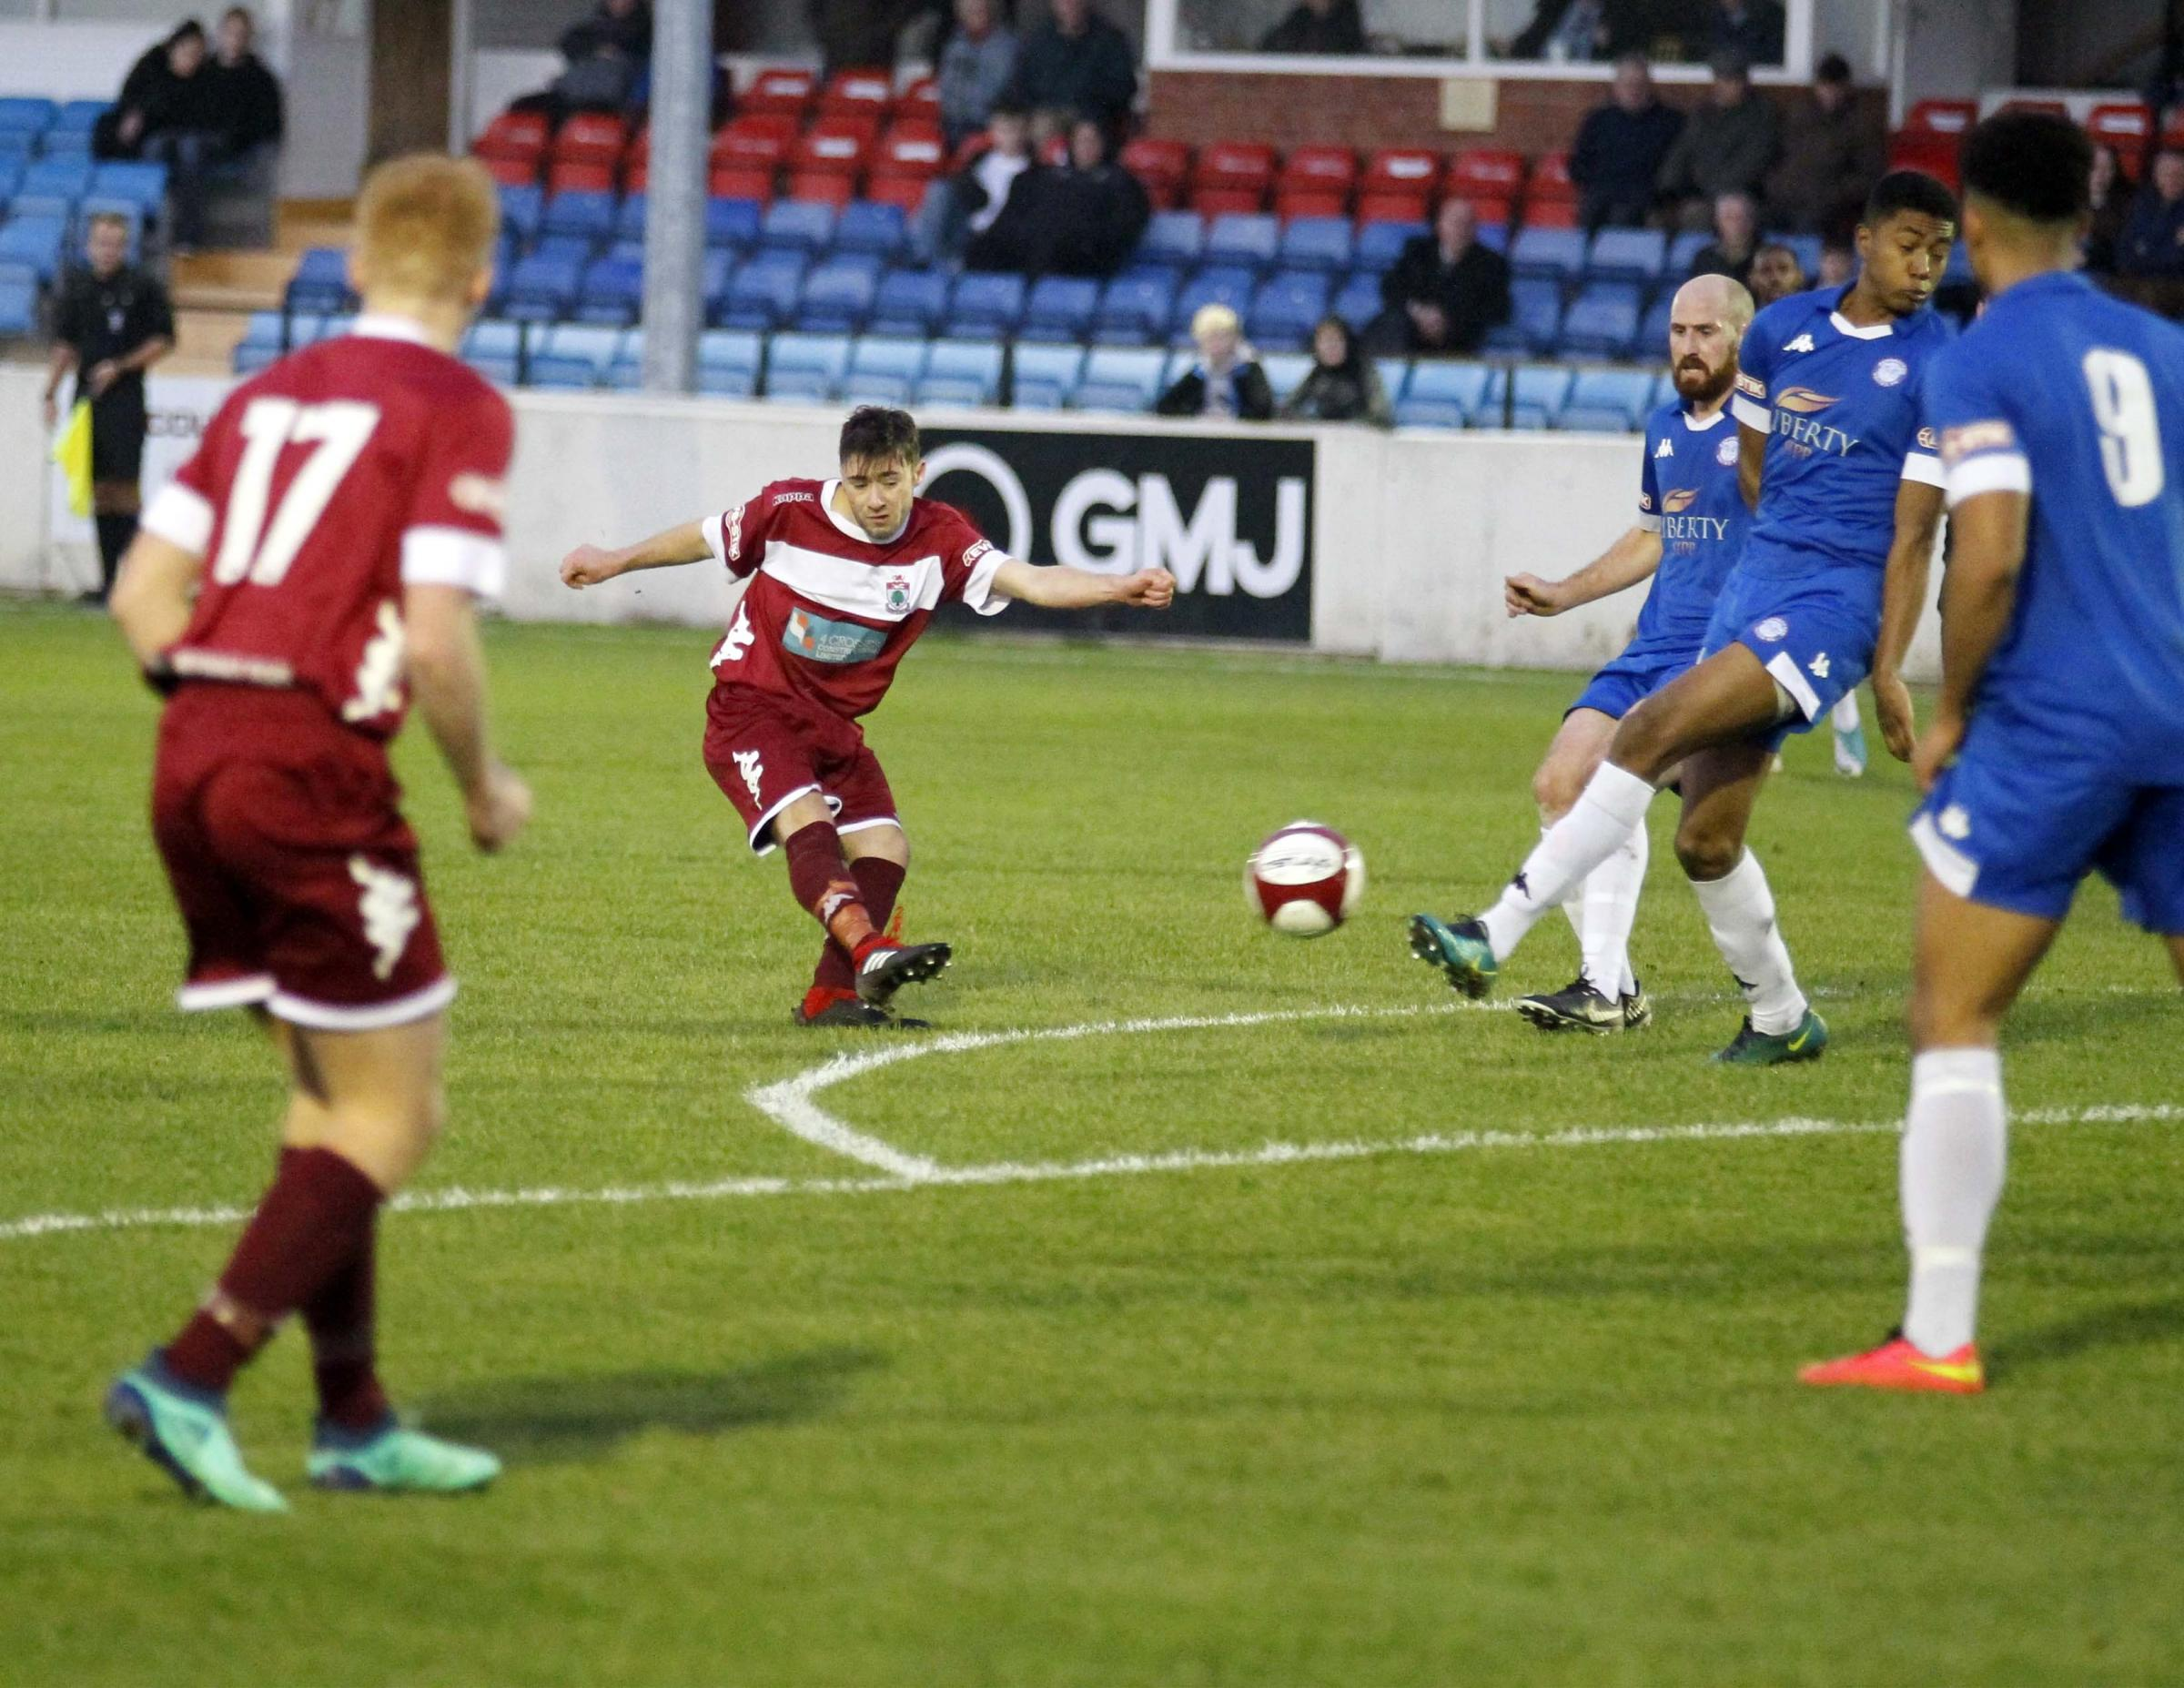 Colwyn Bay playmaker Craig Pritchard in action (Photo by Dave Thomas)